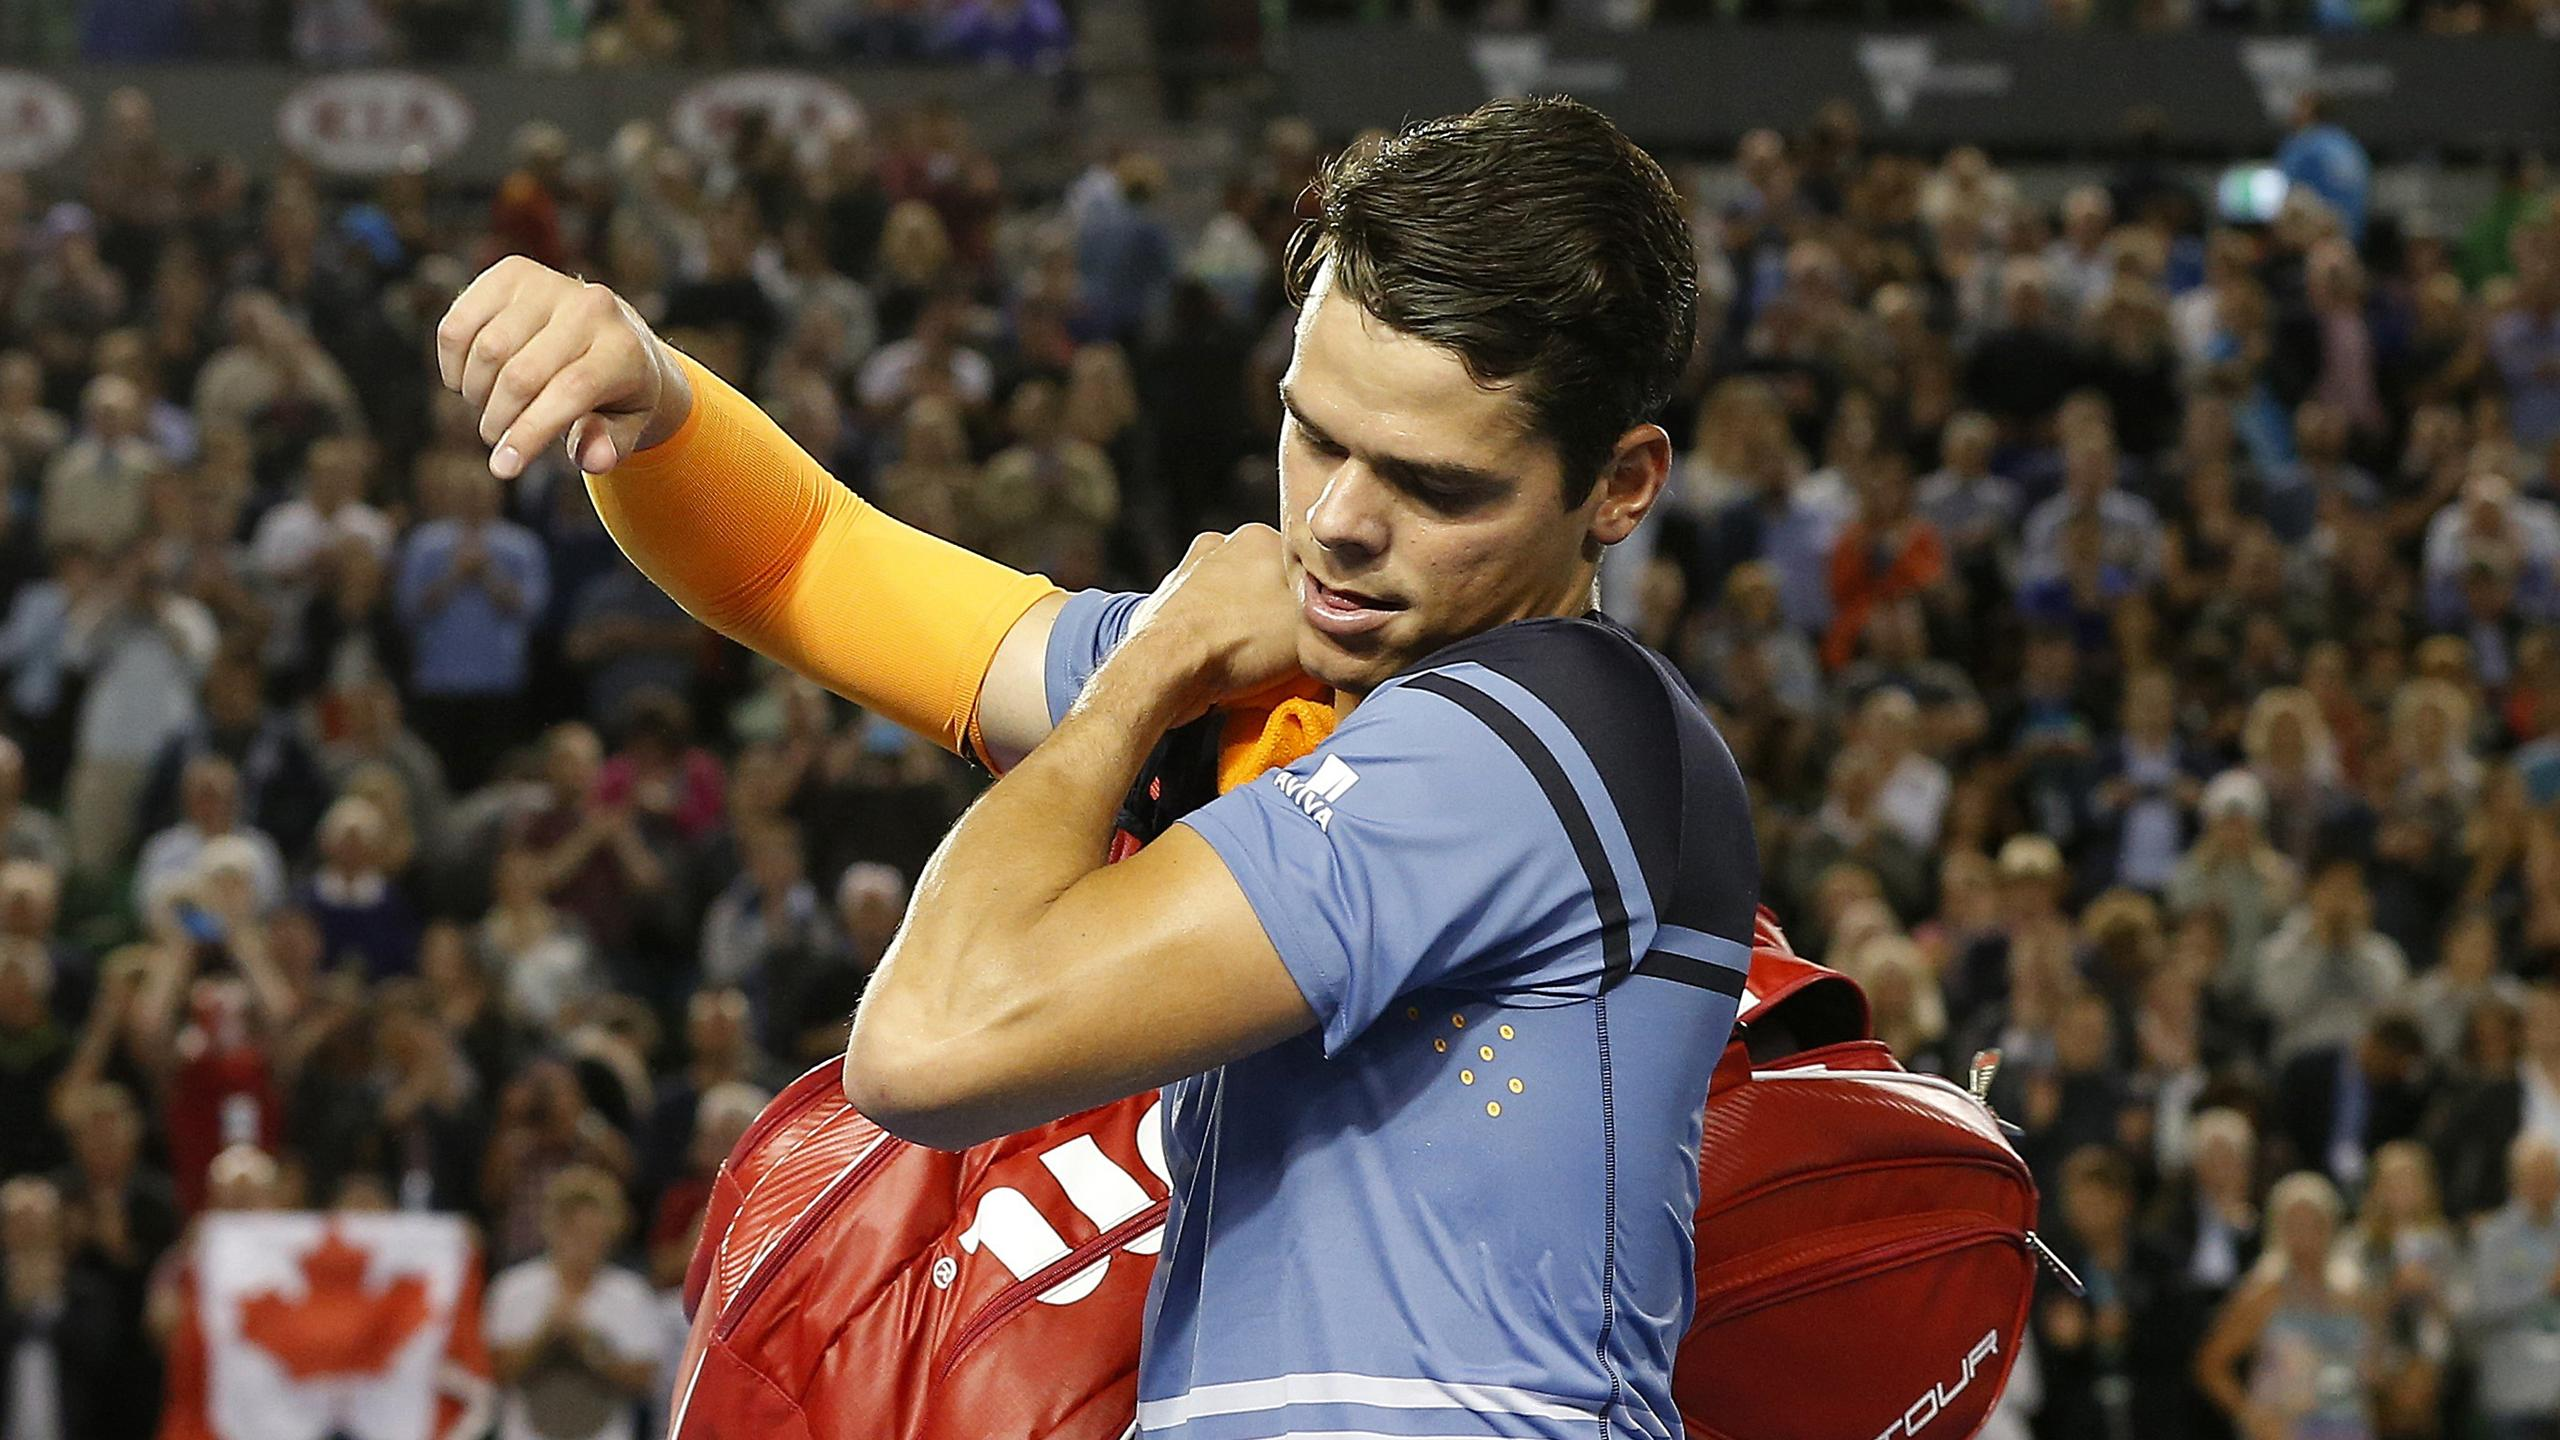 Canada's Milos Raonic leaves the court